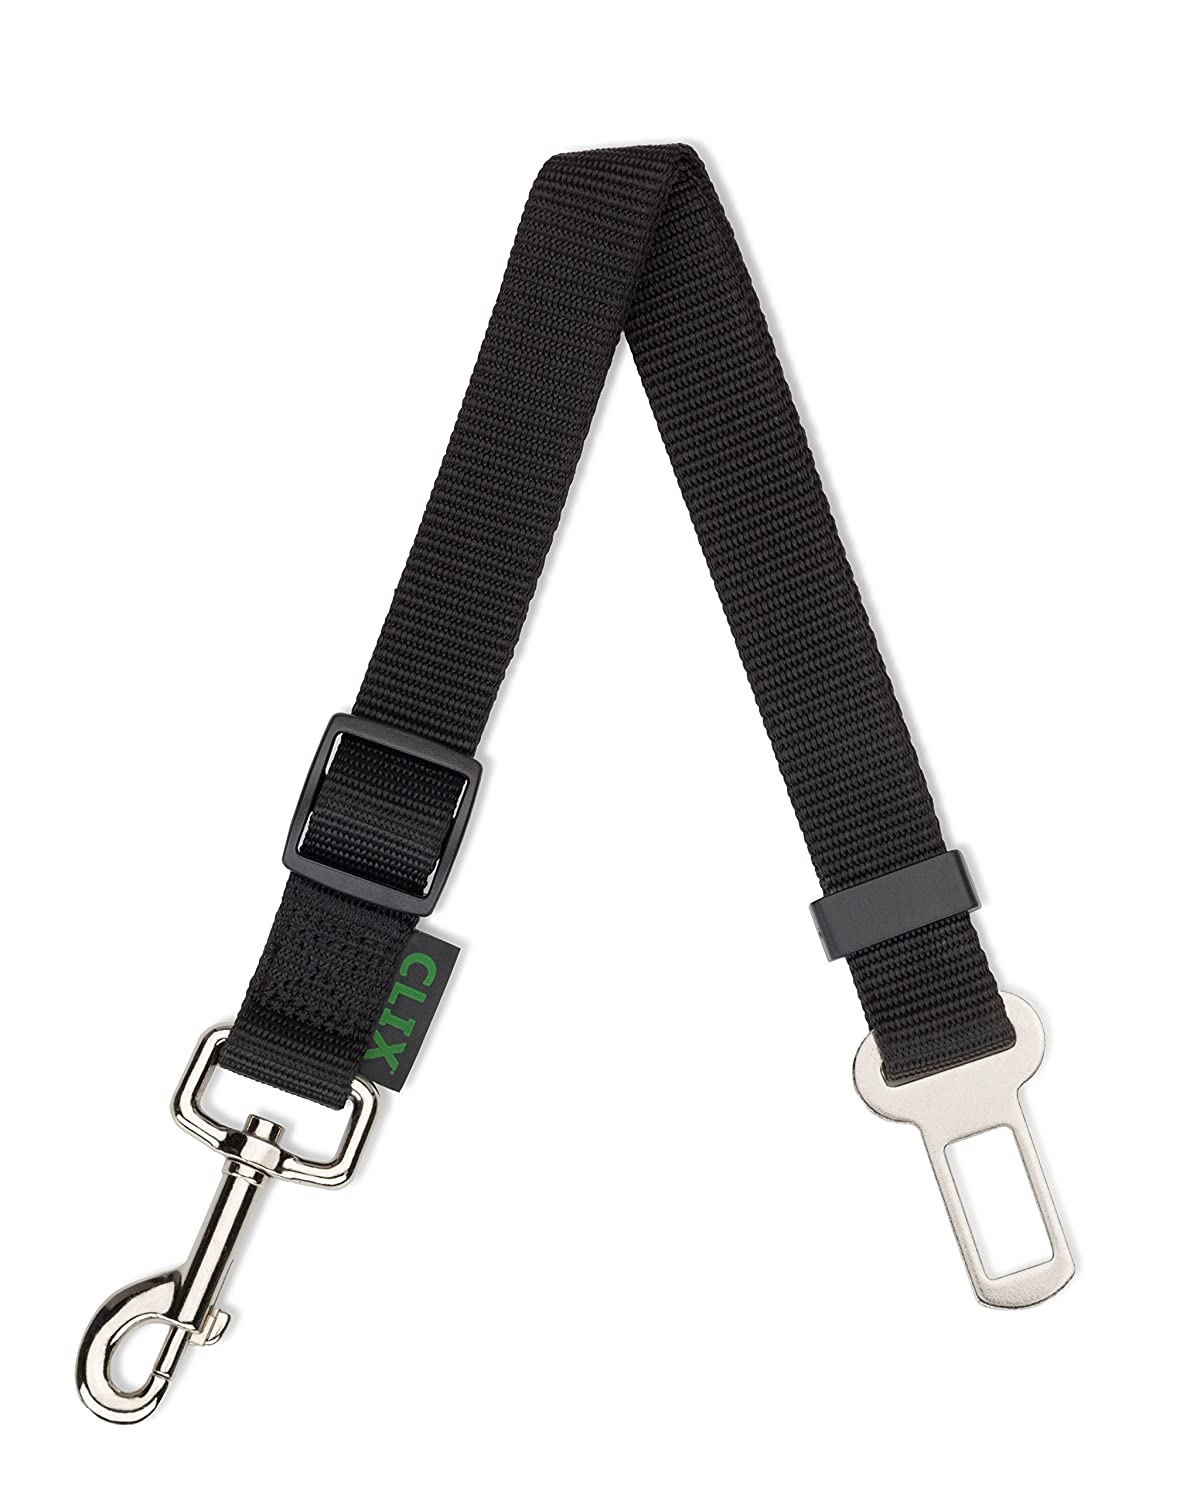 The Company of Animals 0886284296601 - Clix Universal Seat Belt ...